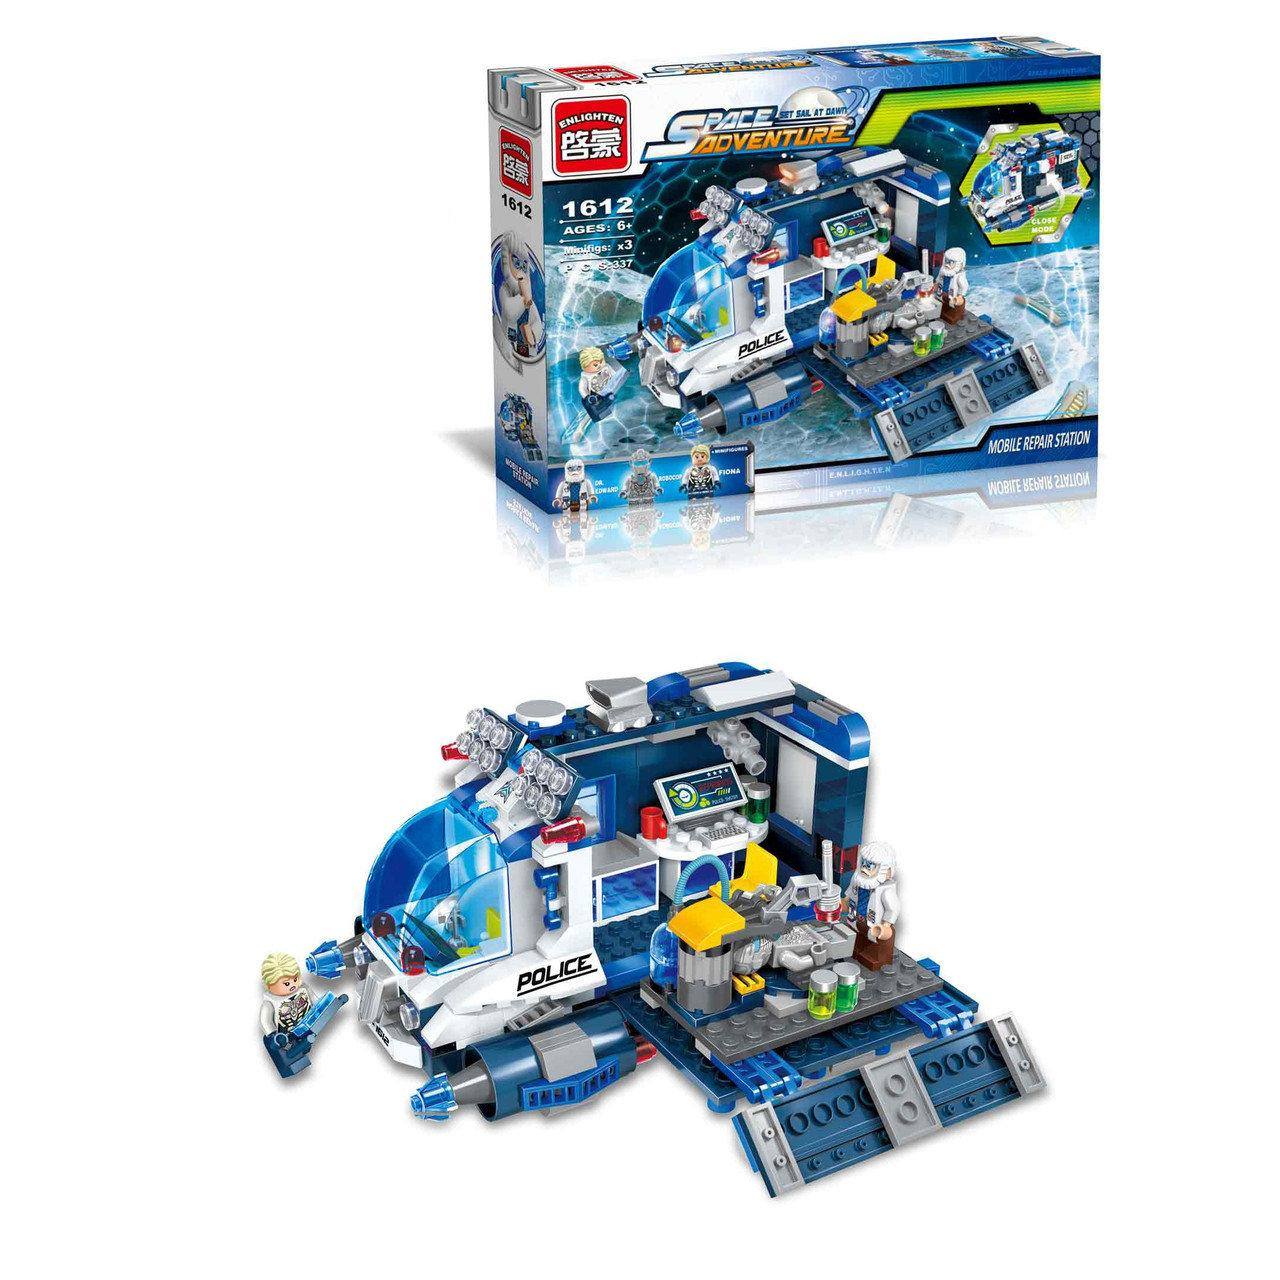 Конструктор Brick Enlighten Space Adventure Police 1612